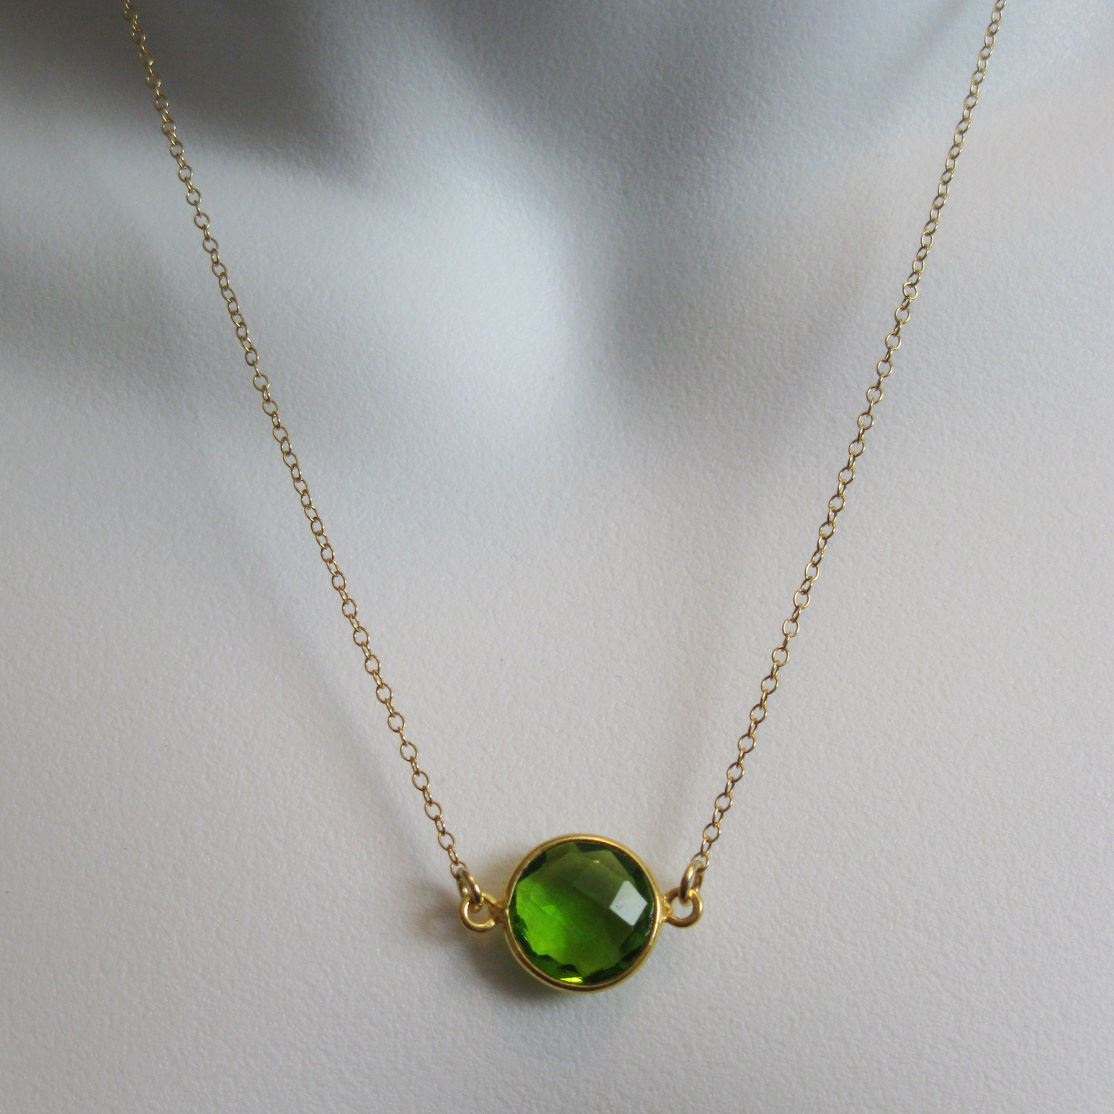 Birthstone Gemstone Necklace-Bezel Gemstone-Round Connector Necklace -Birthstone, Personalized Jewelry Gift-Gold Plated over Sterling Silver